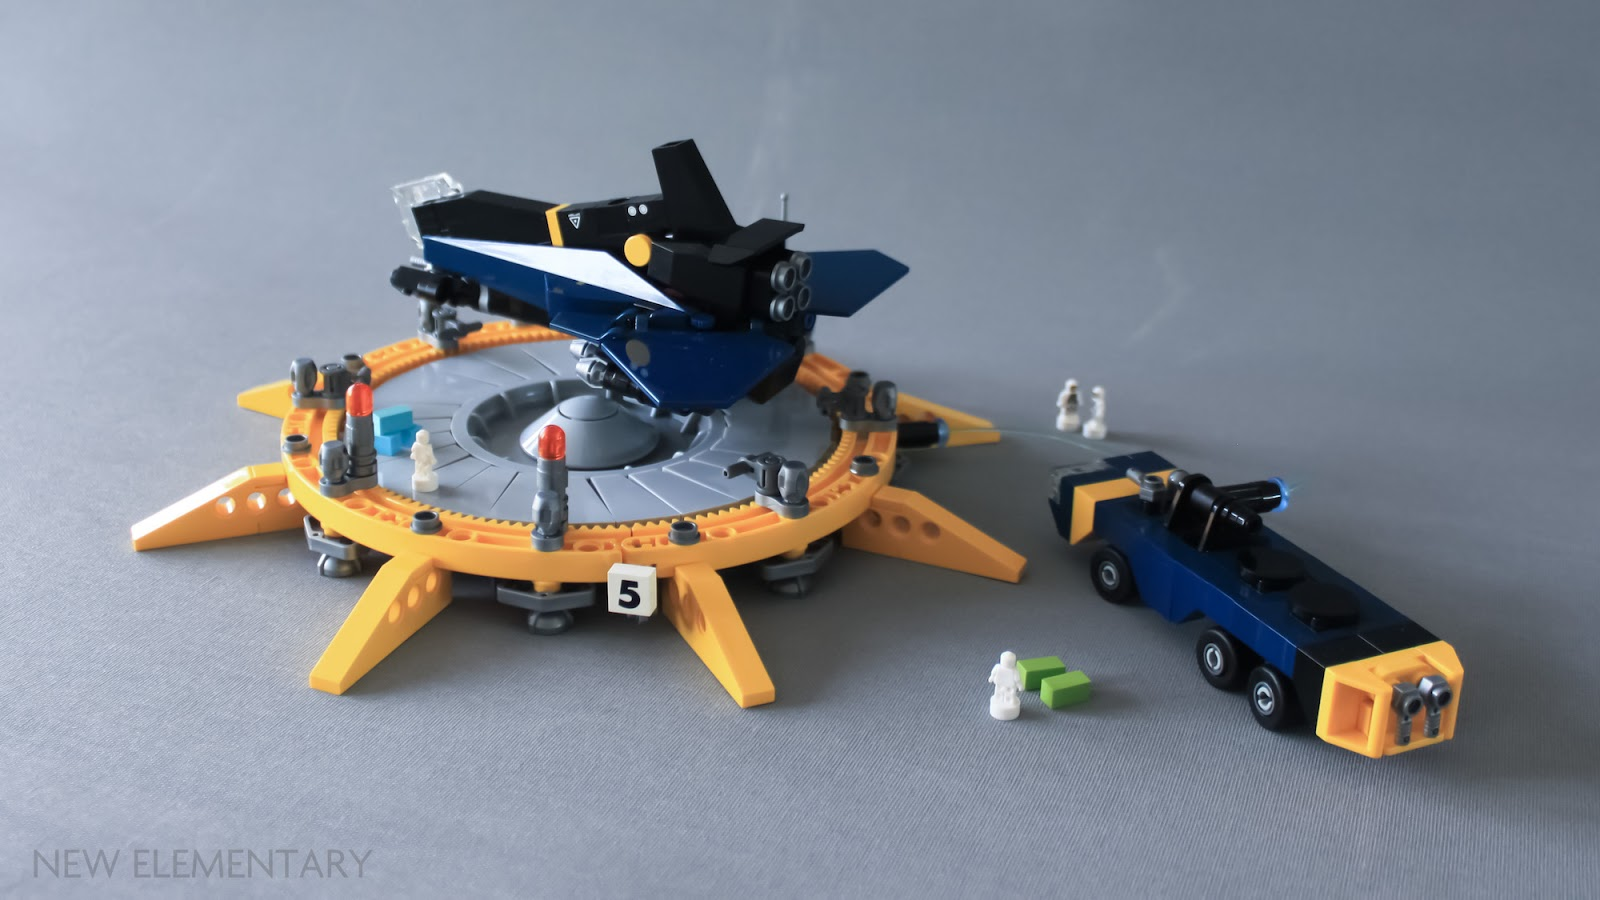 New Elementary Lego Parts Sets And Techniques 2019